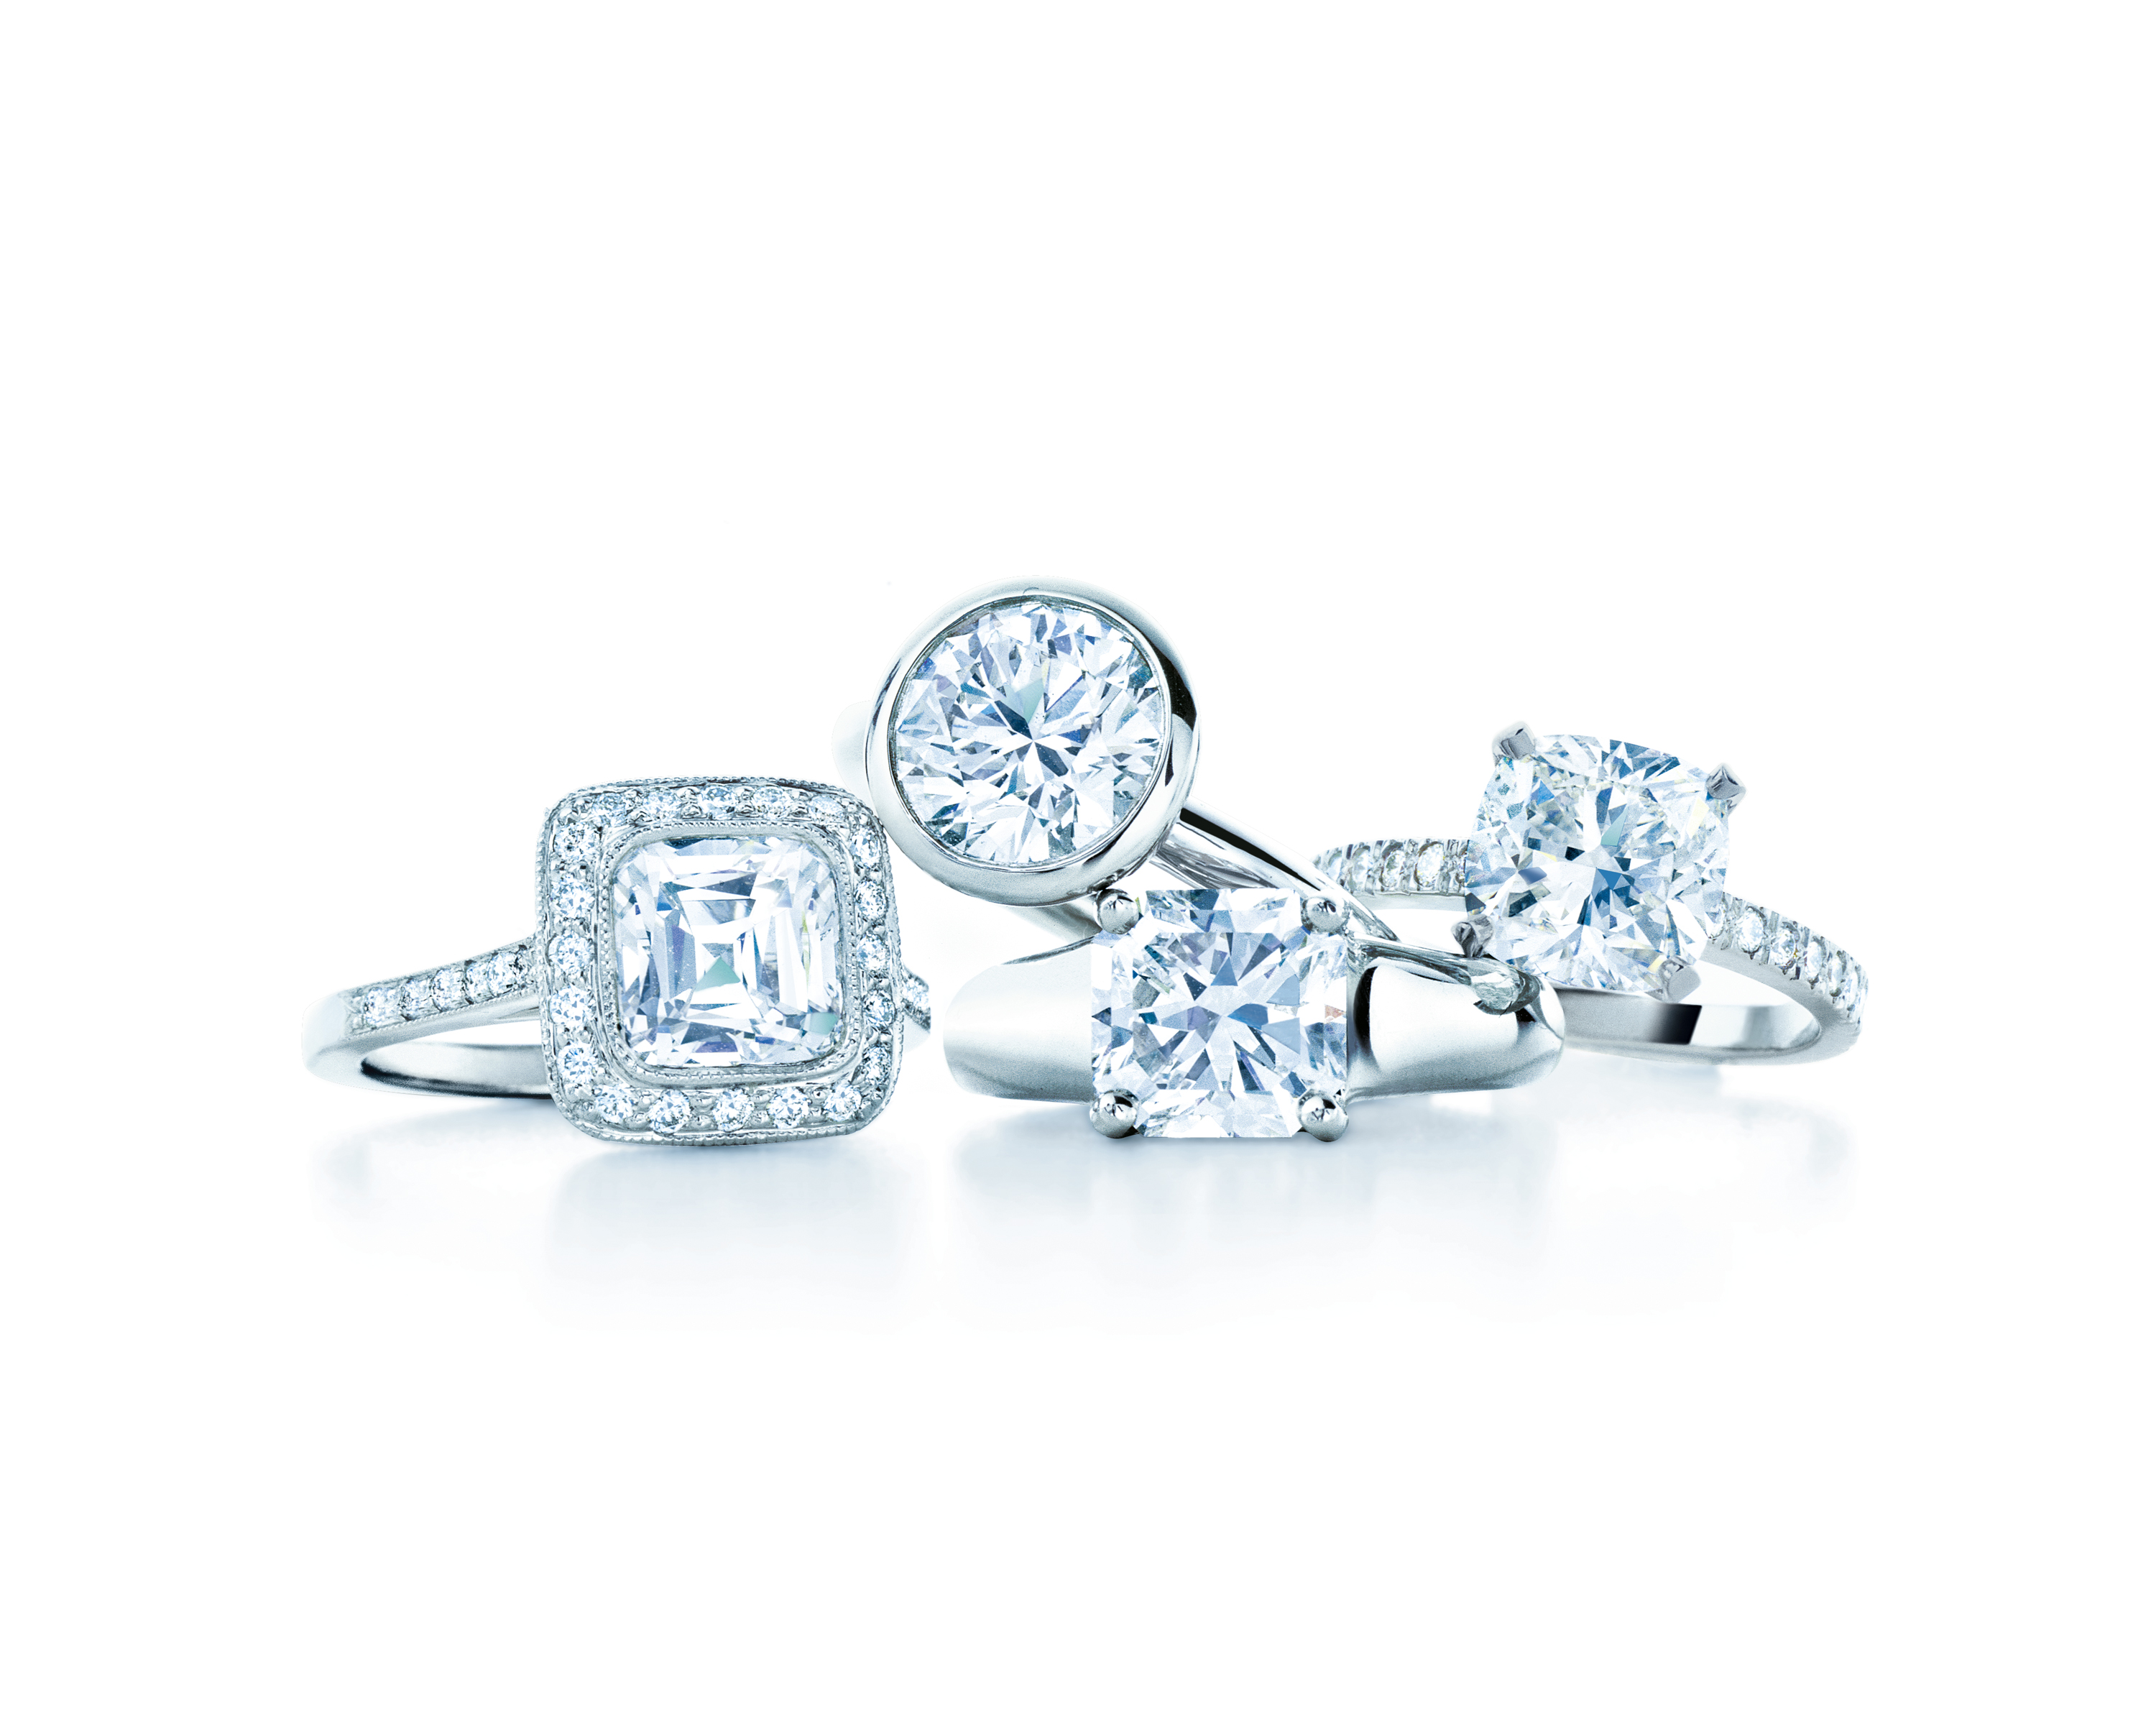 Diamond Jewelry And More In Orange County